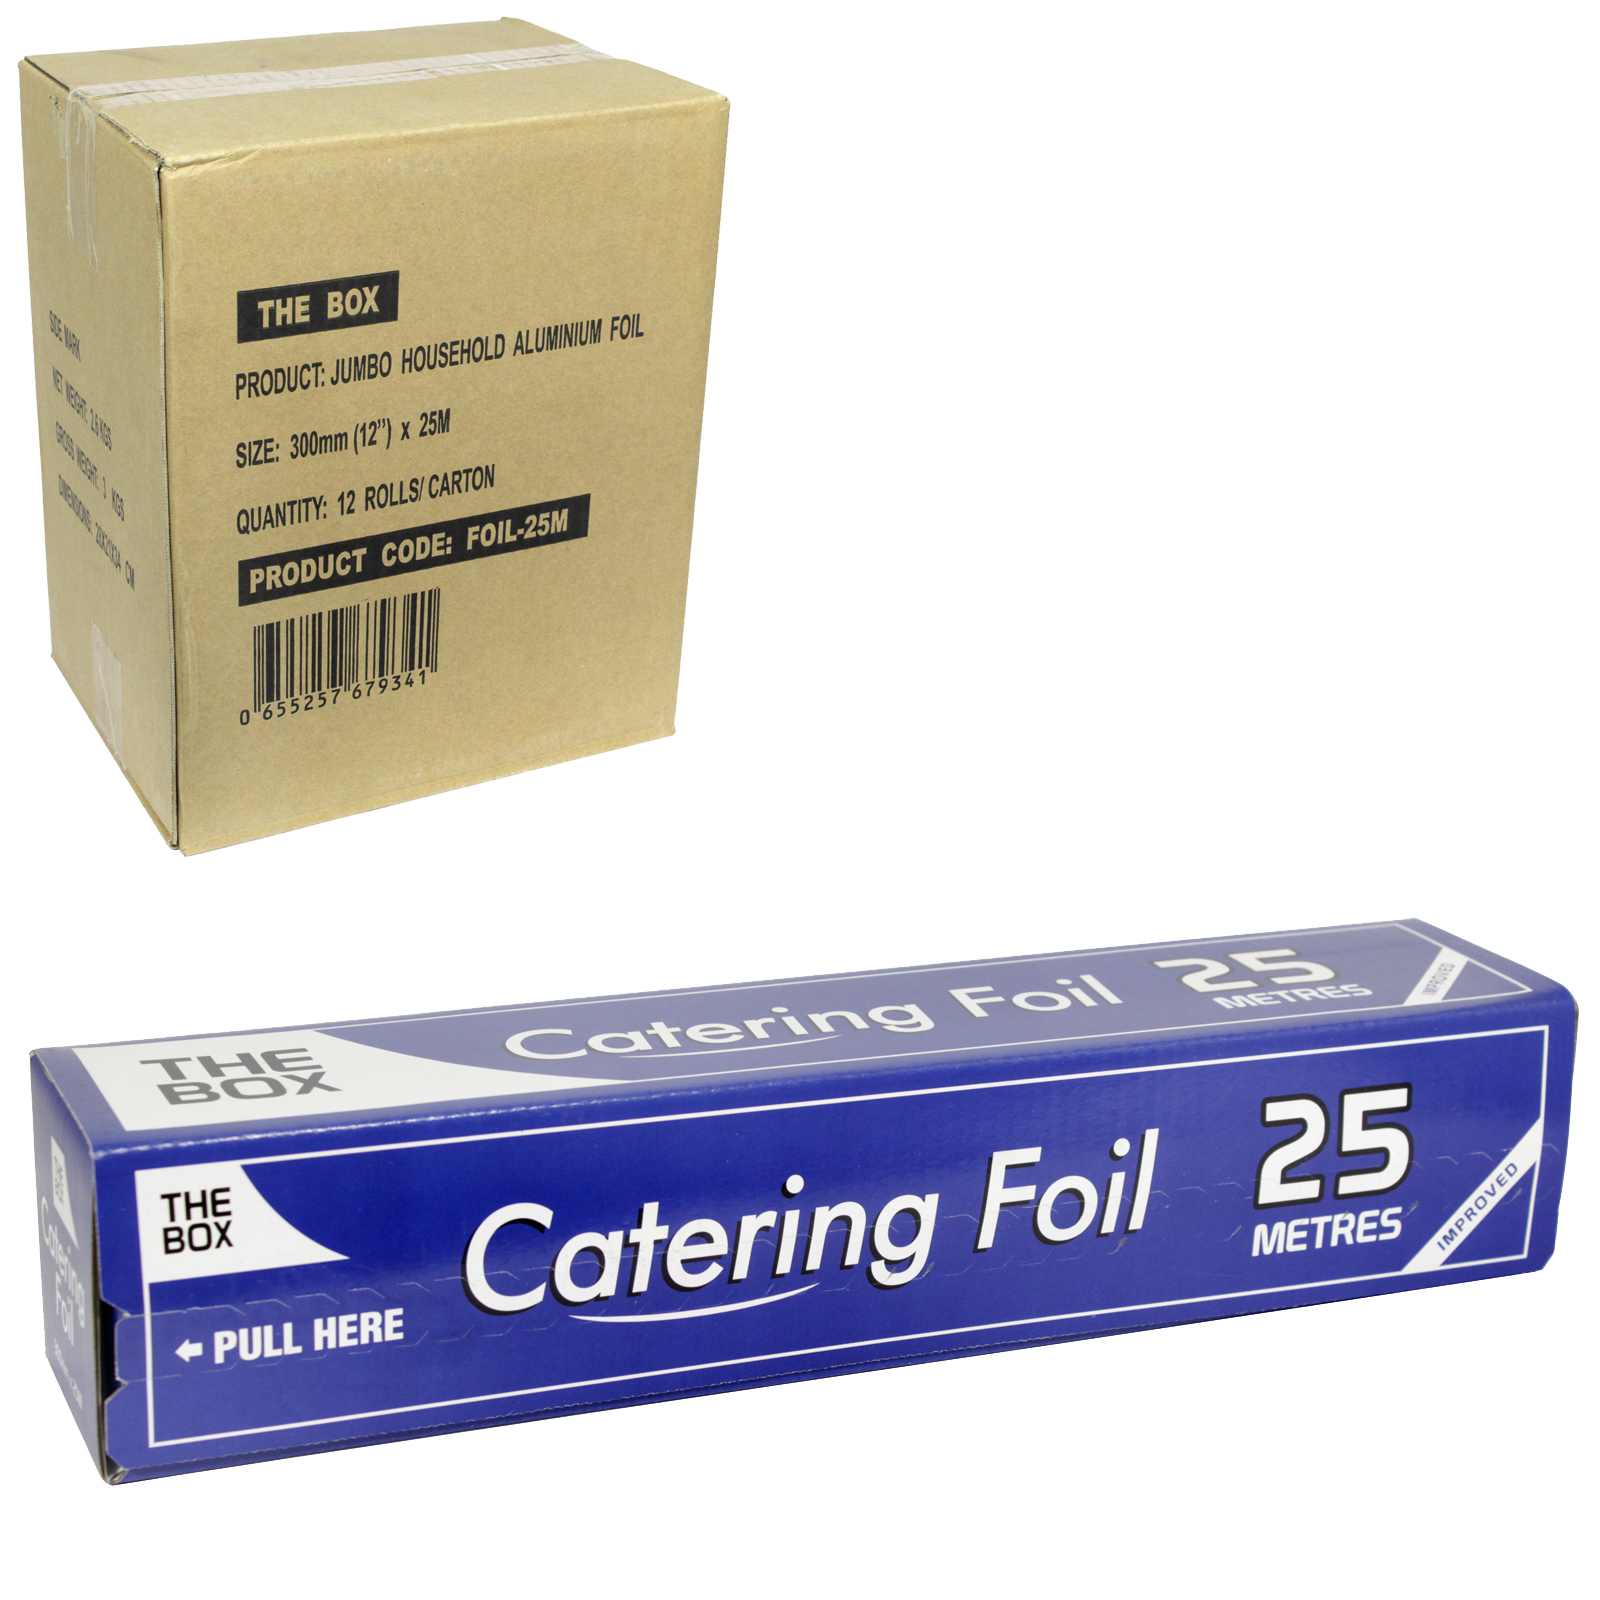 THE BOX CATERING FOIL 300MMX25M X12